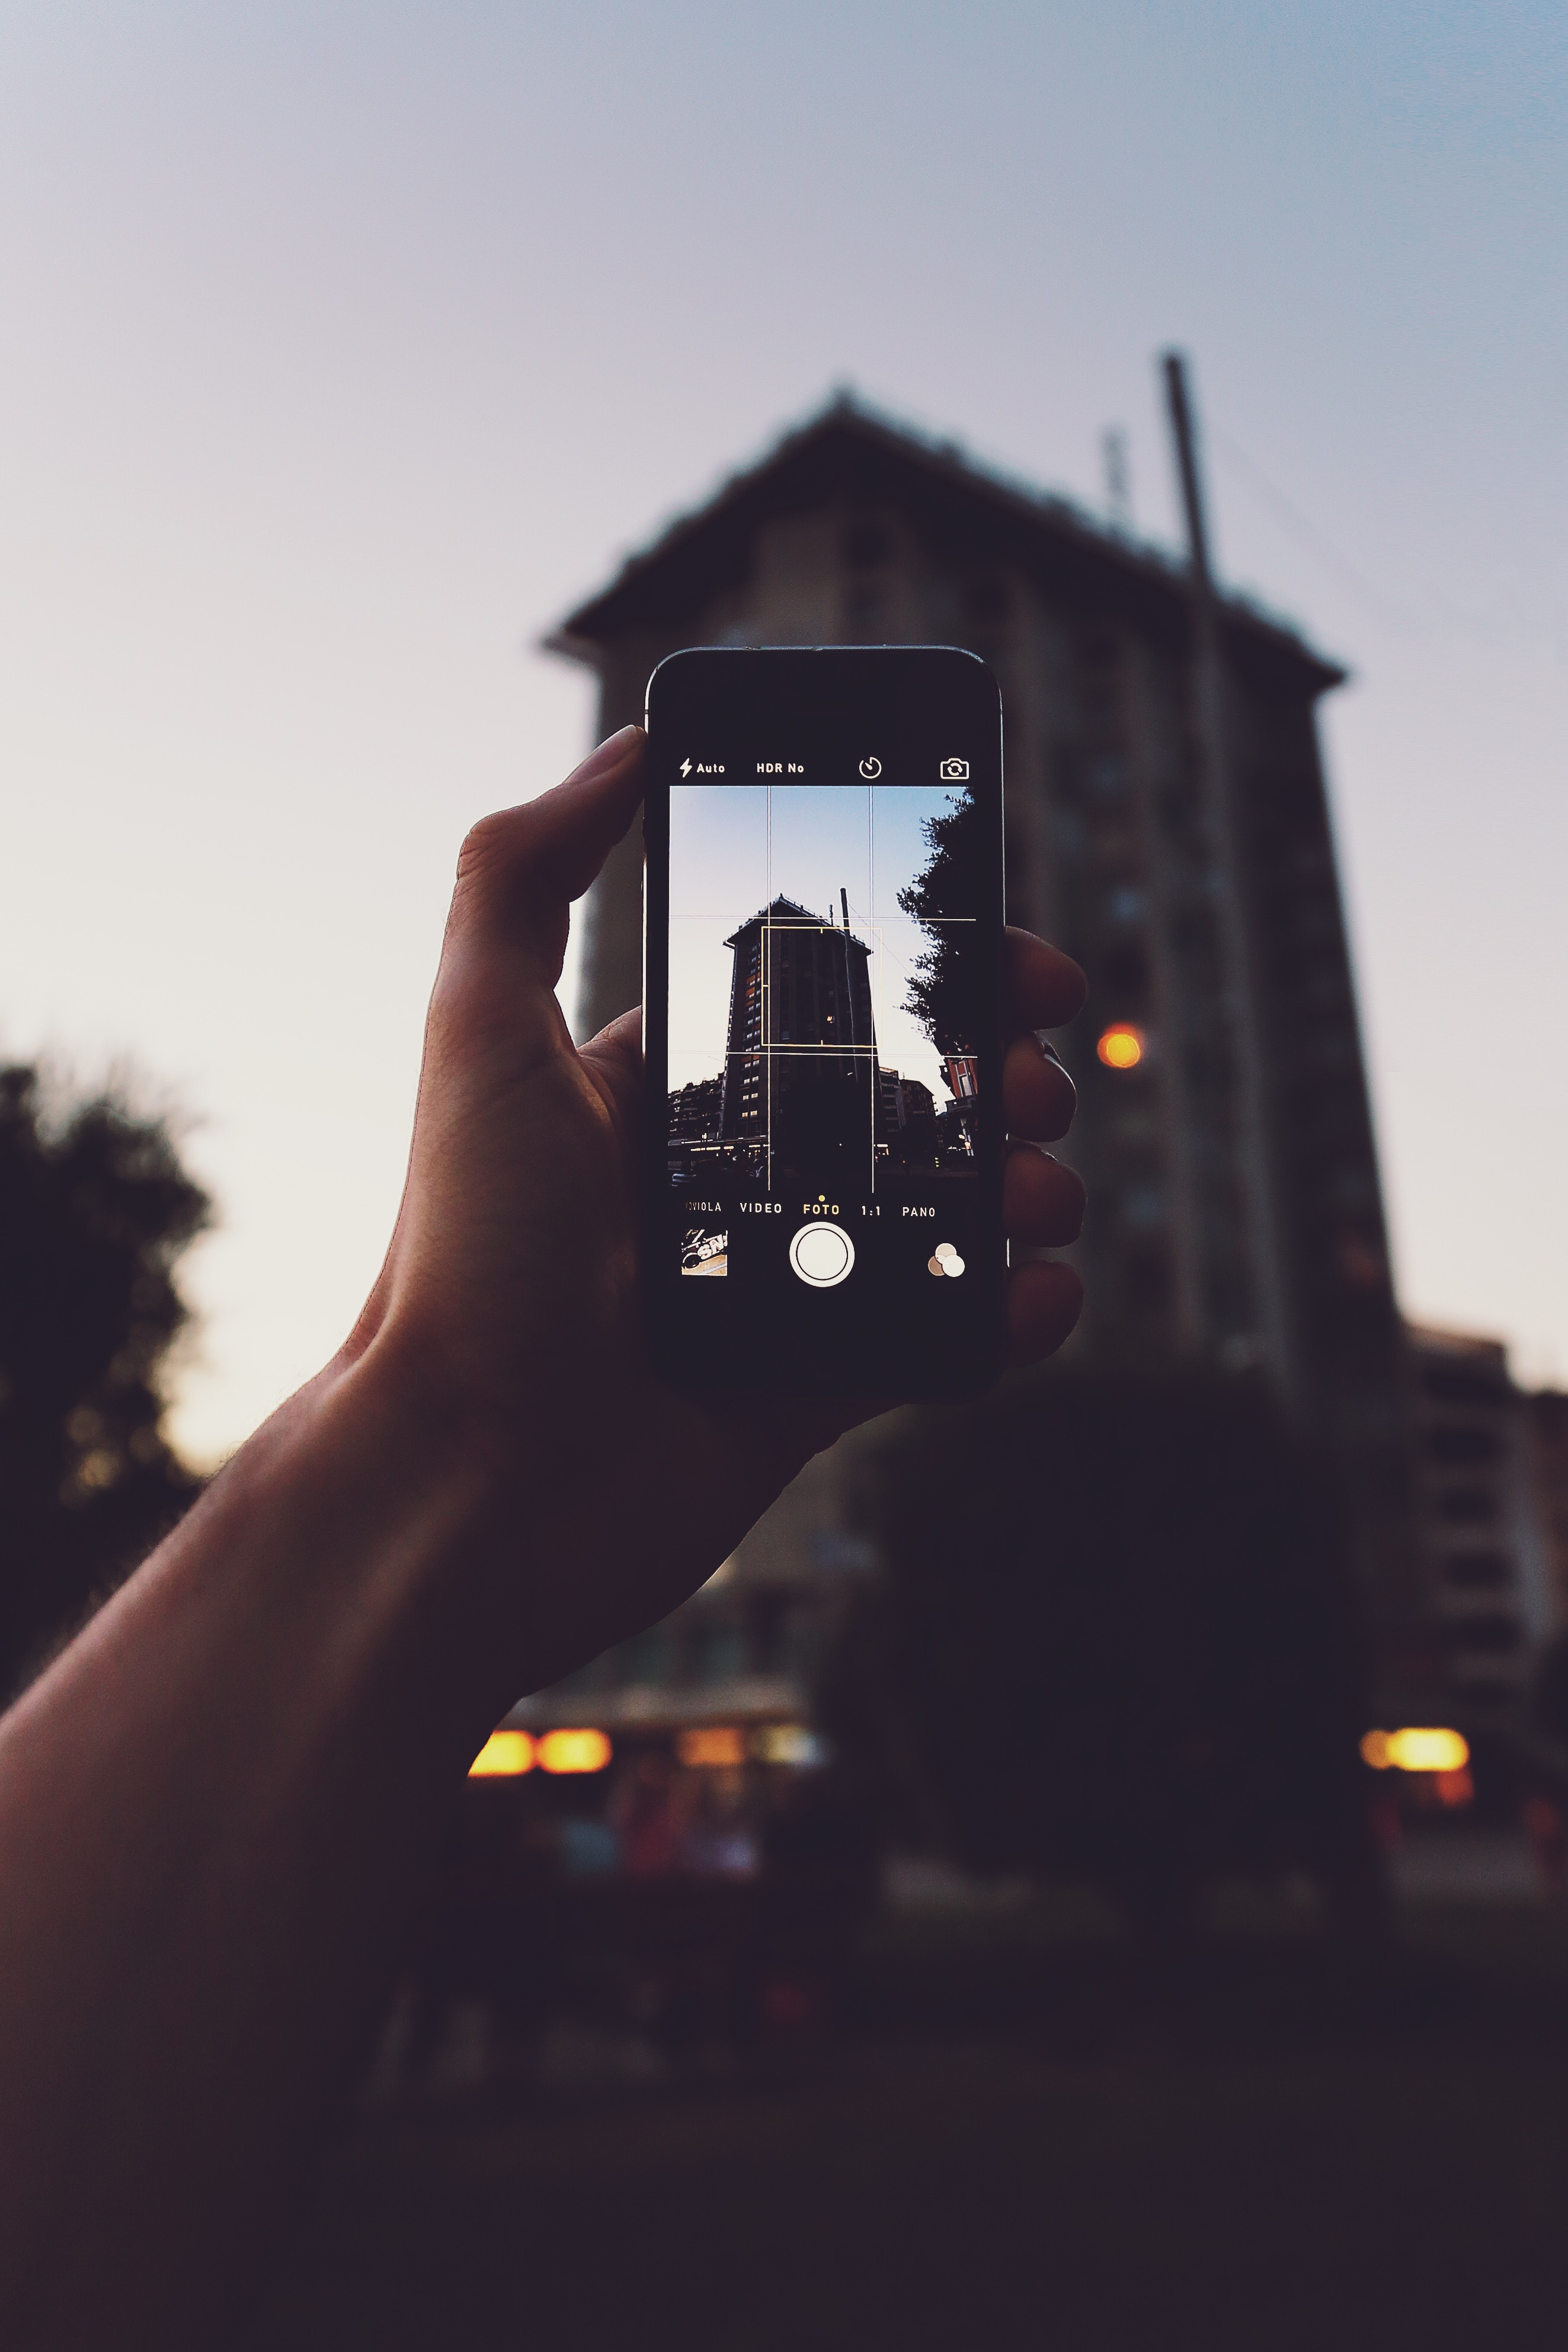 Person Holding Iphone Taking a Photo of Building, Architecture, Mobile phone, Trees, Touchscreen, HQ Photo